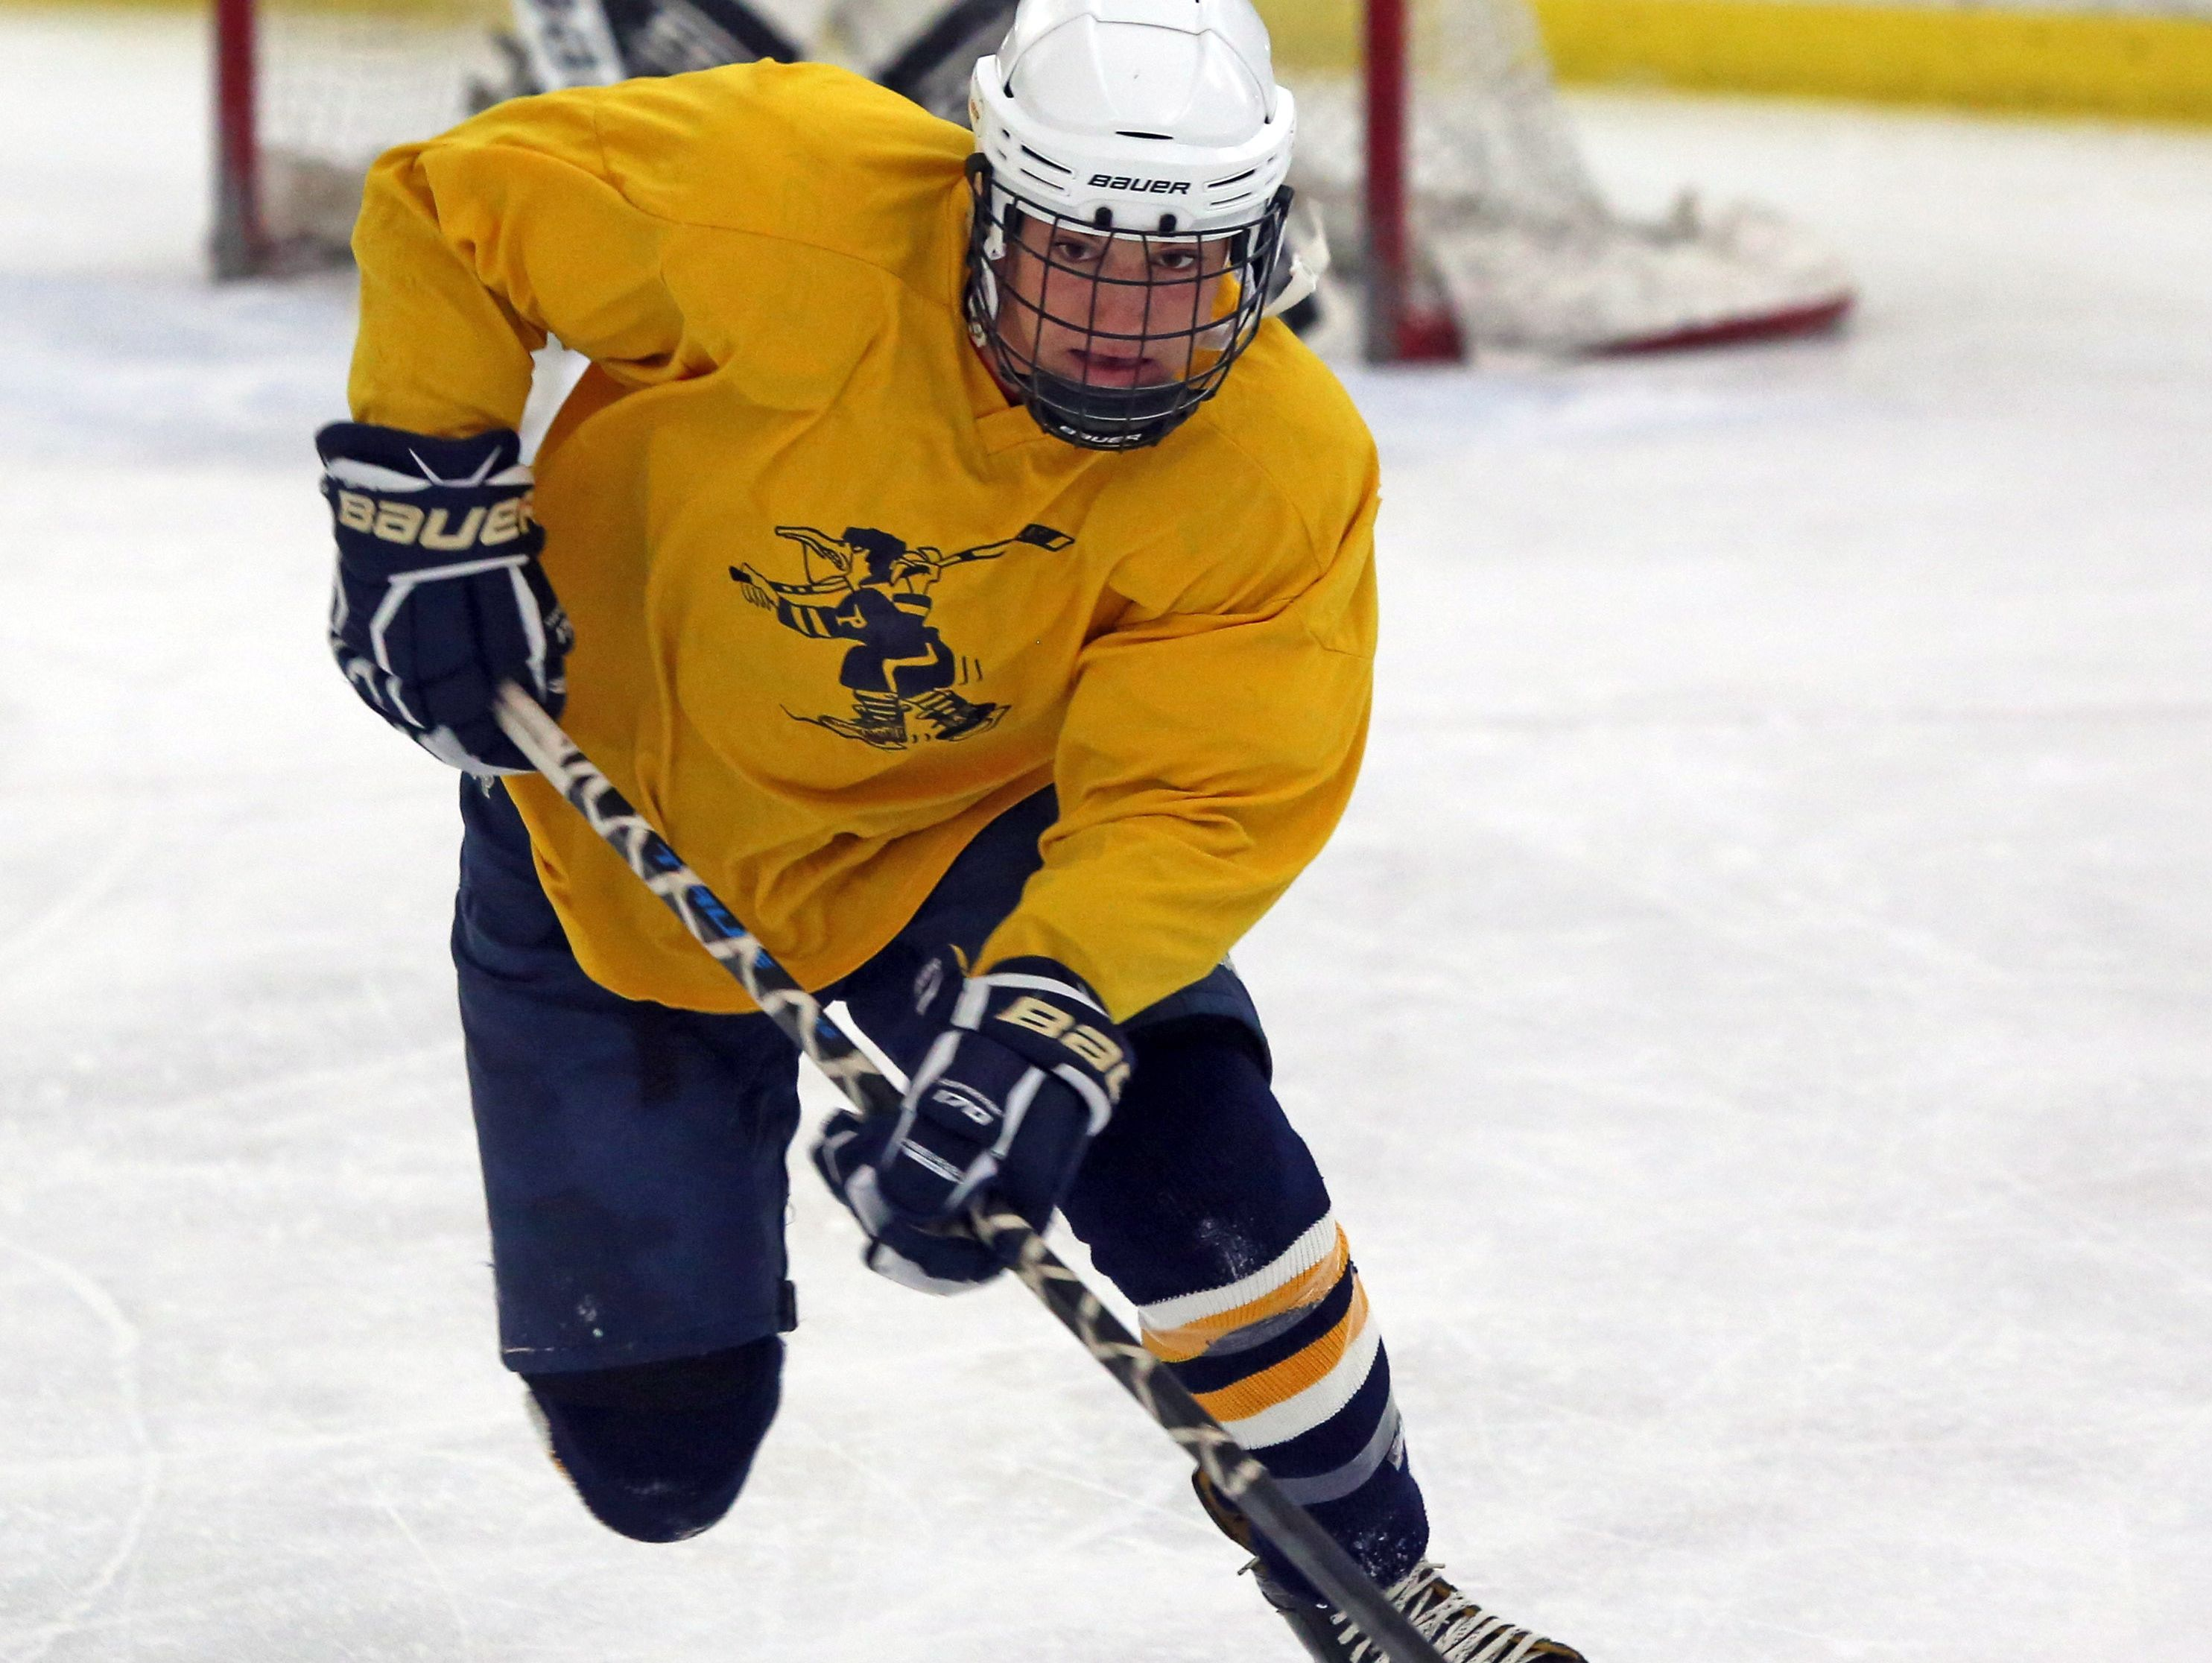 Russell Mazzano during the first day of practice for Pelham hockey team at Ice Hutch in Mount Vernon Nov. 7, 2016.